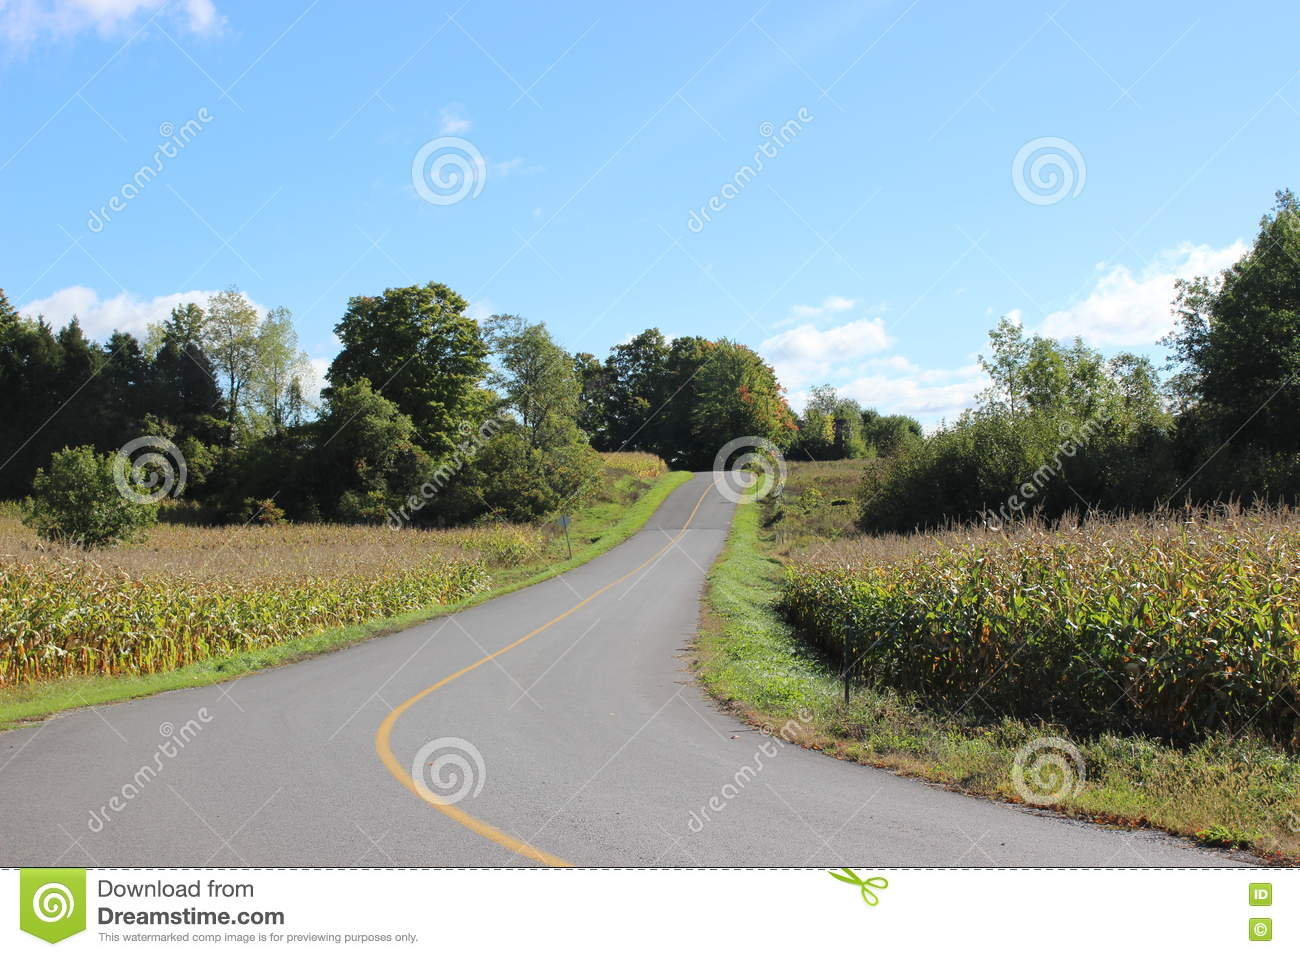 Country Road in the Eastern Townships in Quebec